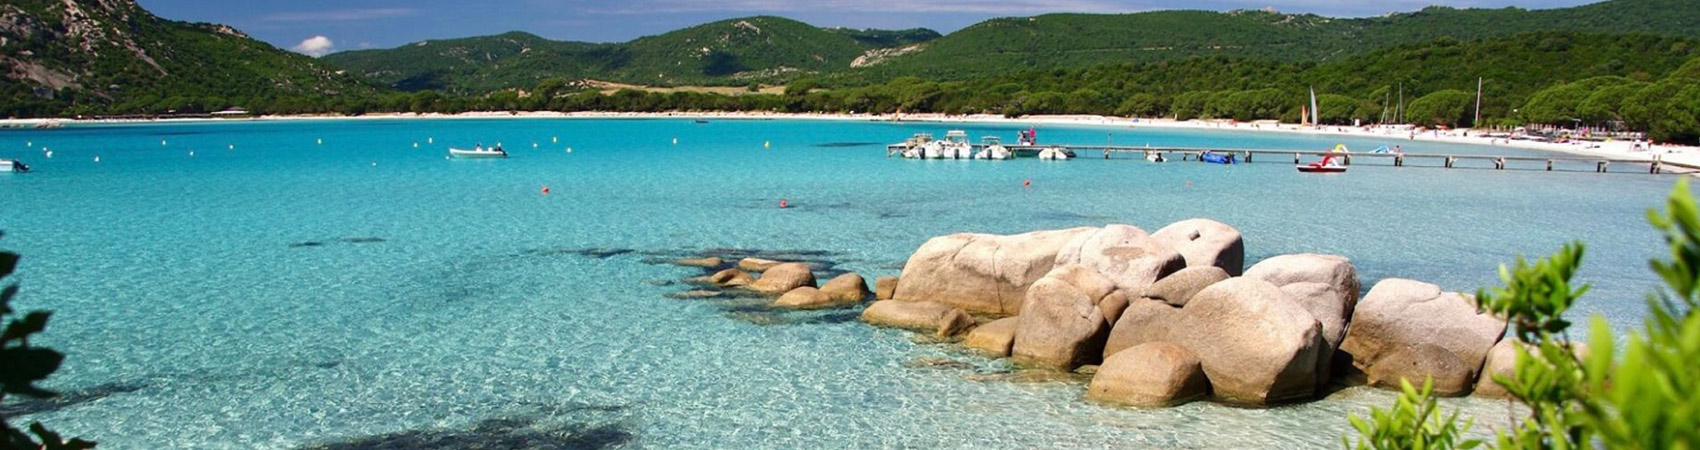 corse camping